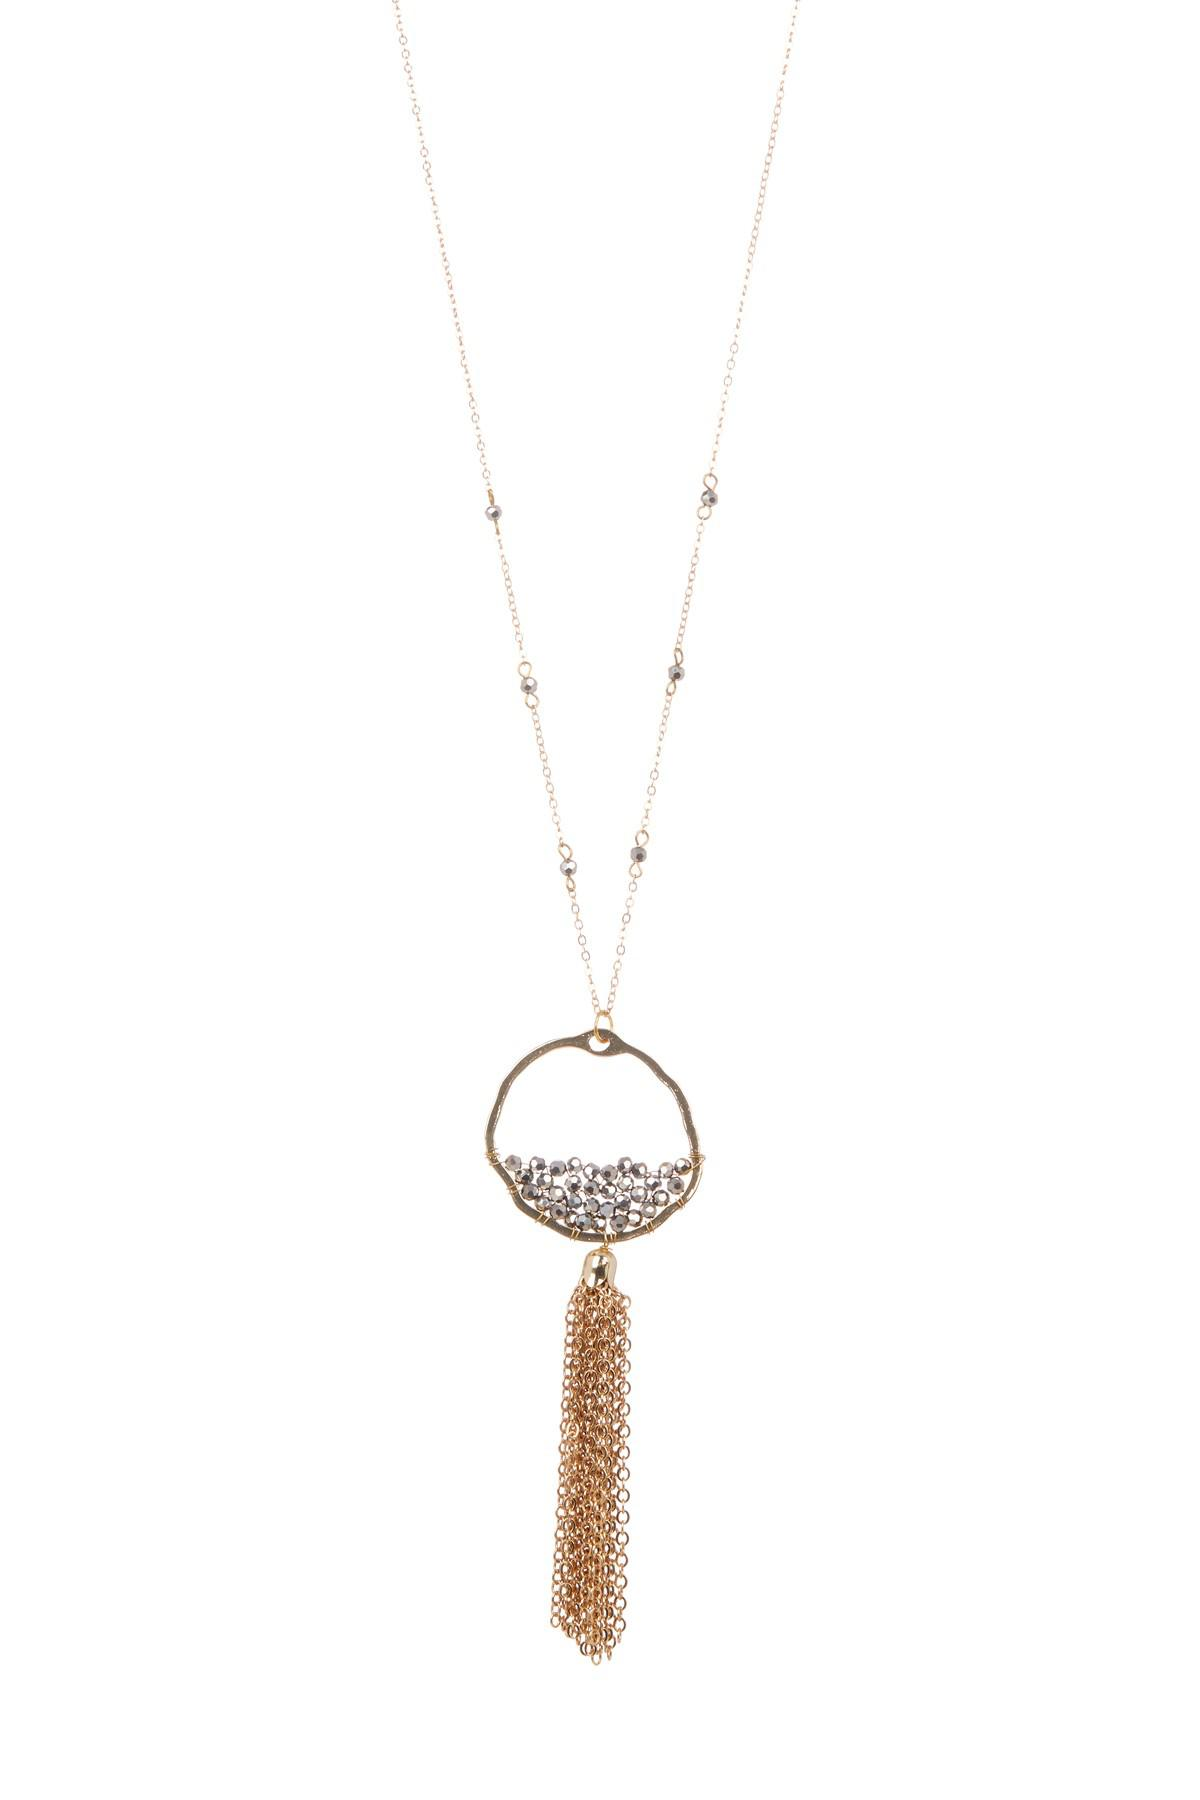 Panacea Seed Bead Tassel Pendant Necklace ZKSo5cd3V